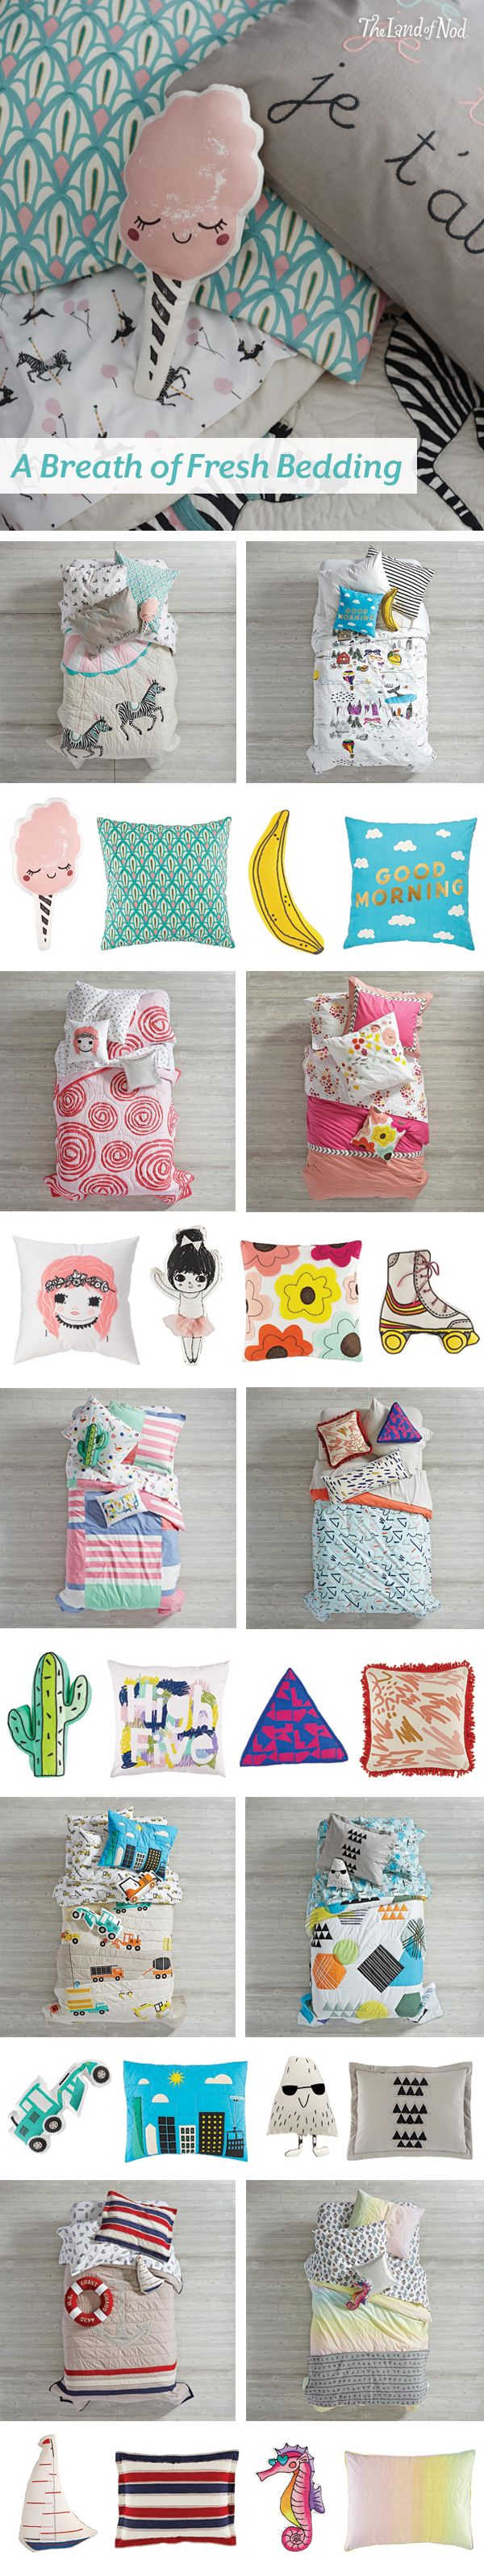 We've got bedtime covered with our brand new kids bedding sets. The Land of Nod's collection includes amazing styles for every girl or boy's bedroom. From princess bedding and nautical bedding to construction bedding and floral bedding, there's a style that'll catch any kid's eye. Plus, complement each set with throw pillows and a sham to match.